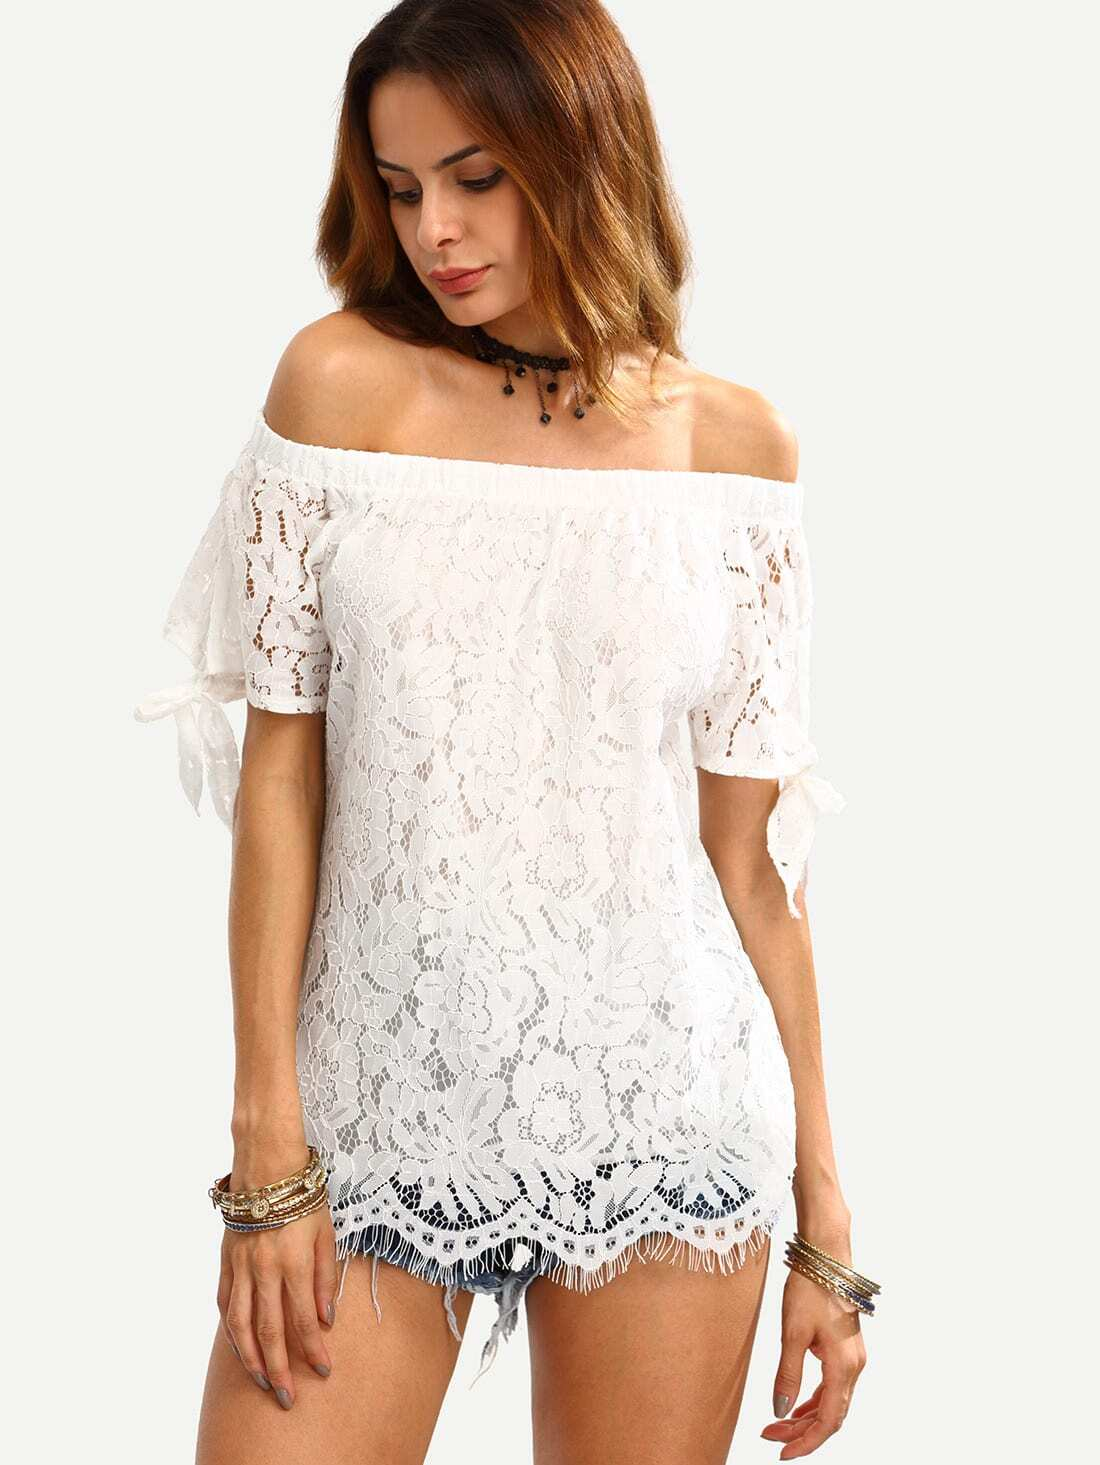 http://it.shein.com/White-Off-The-Shoulder-Lace-Insert-Knotted-Top-p-290617-cat-1733.html